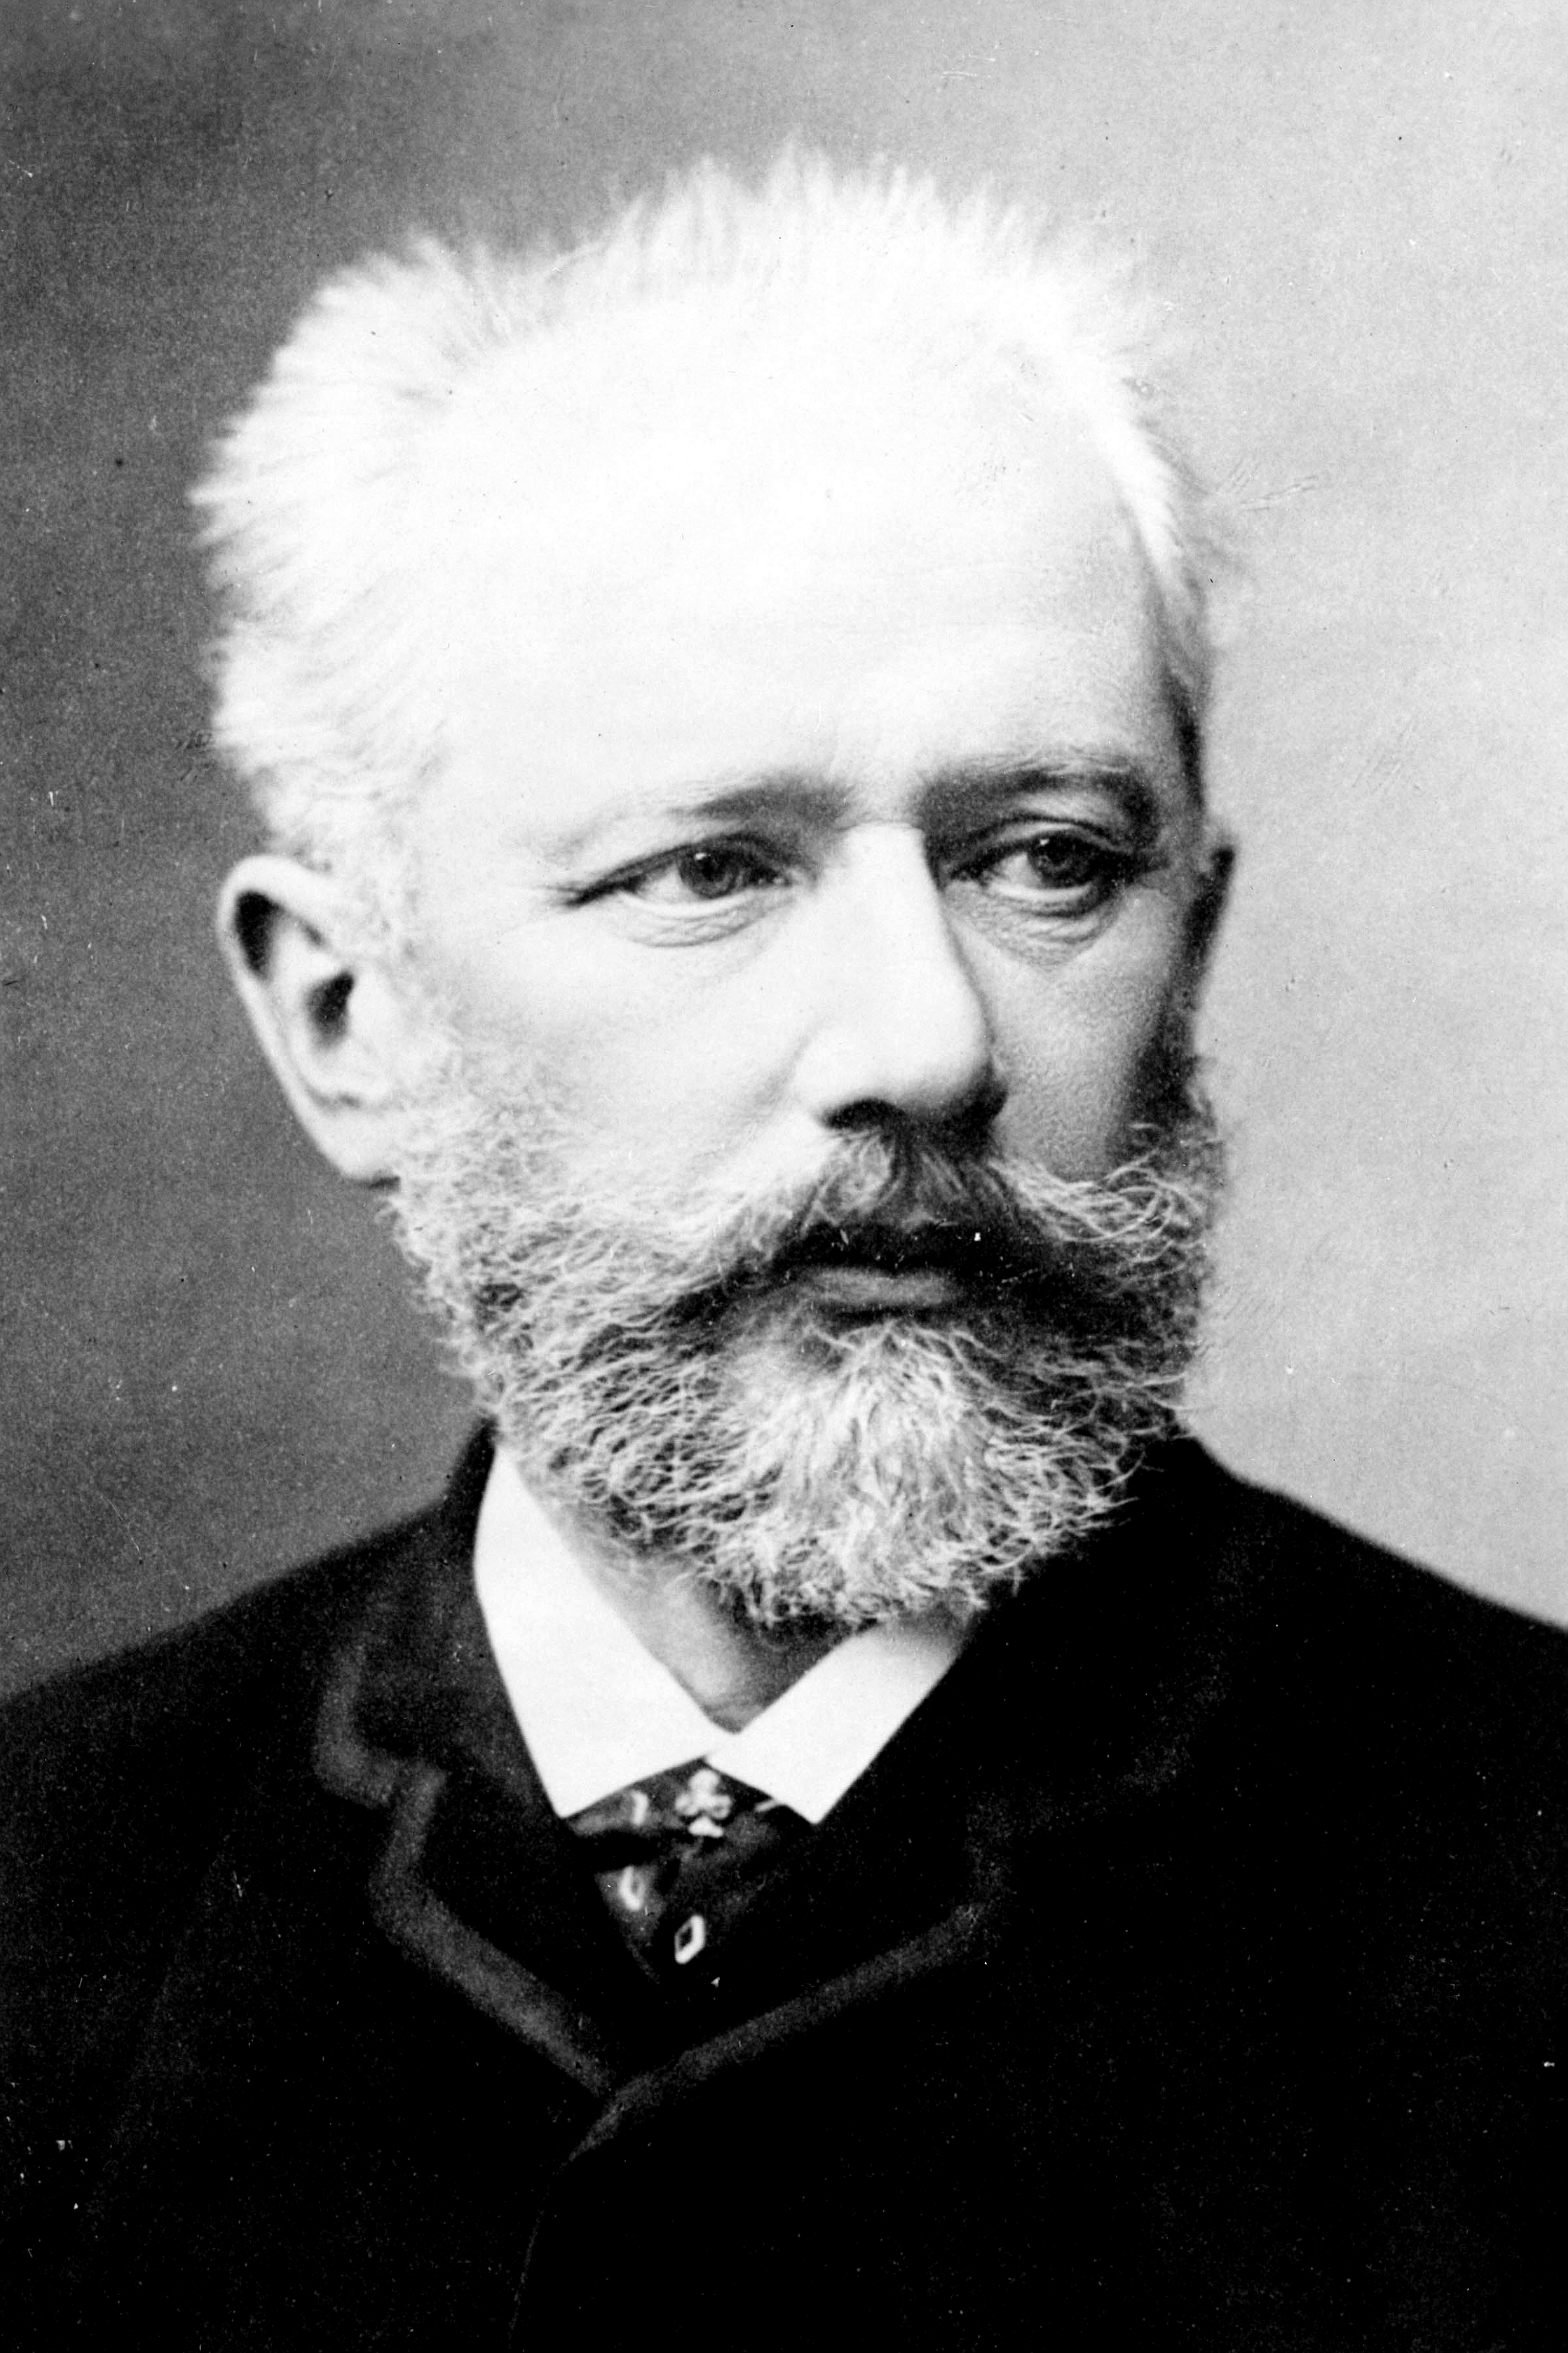 Portrait of Pyotr Ilyich Tchaikovsky, source: https://commons.wikimedia.org/wiki/File:Tchaikovsky2.jpg